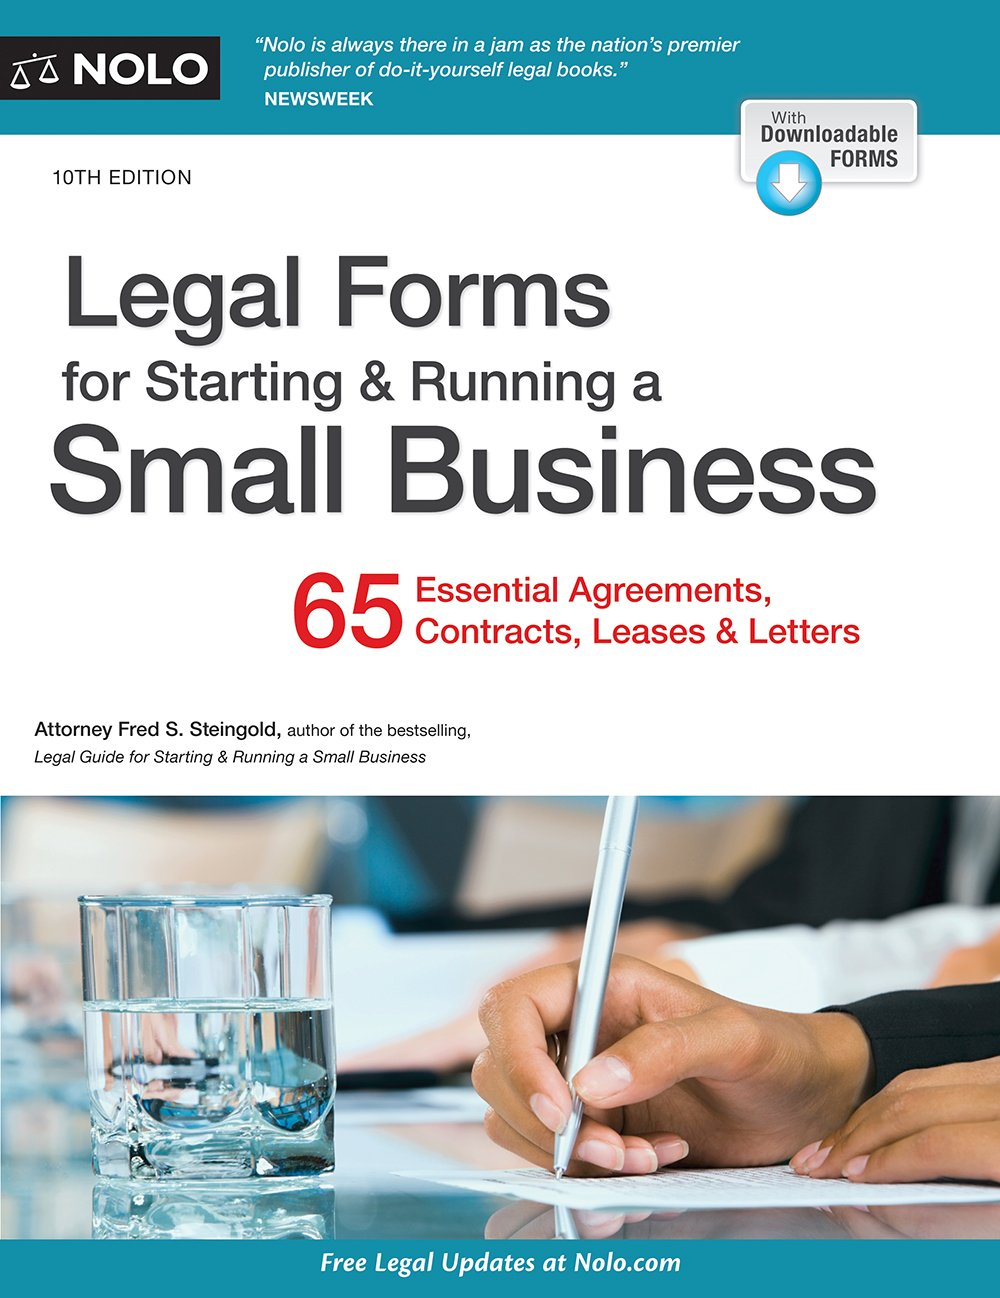 Legal Forms for Starting & Running a Small Business by NOLO